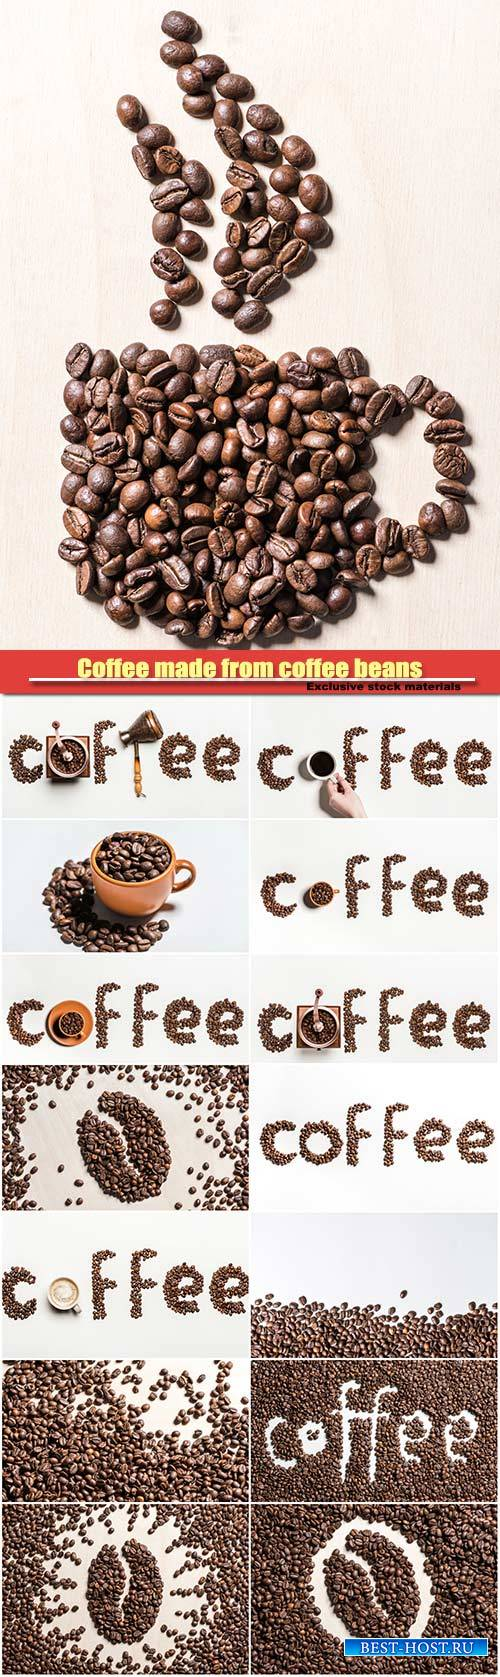 Coffee made from coffee beans and cup with coffee grains